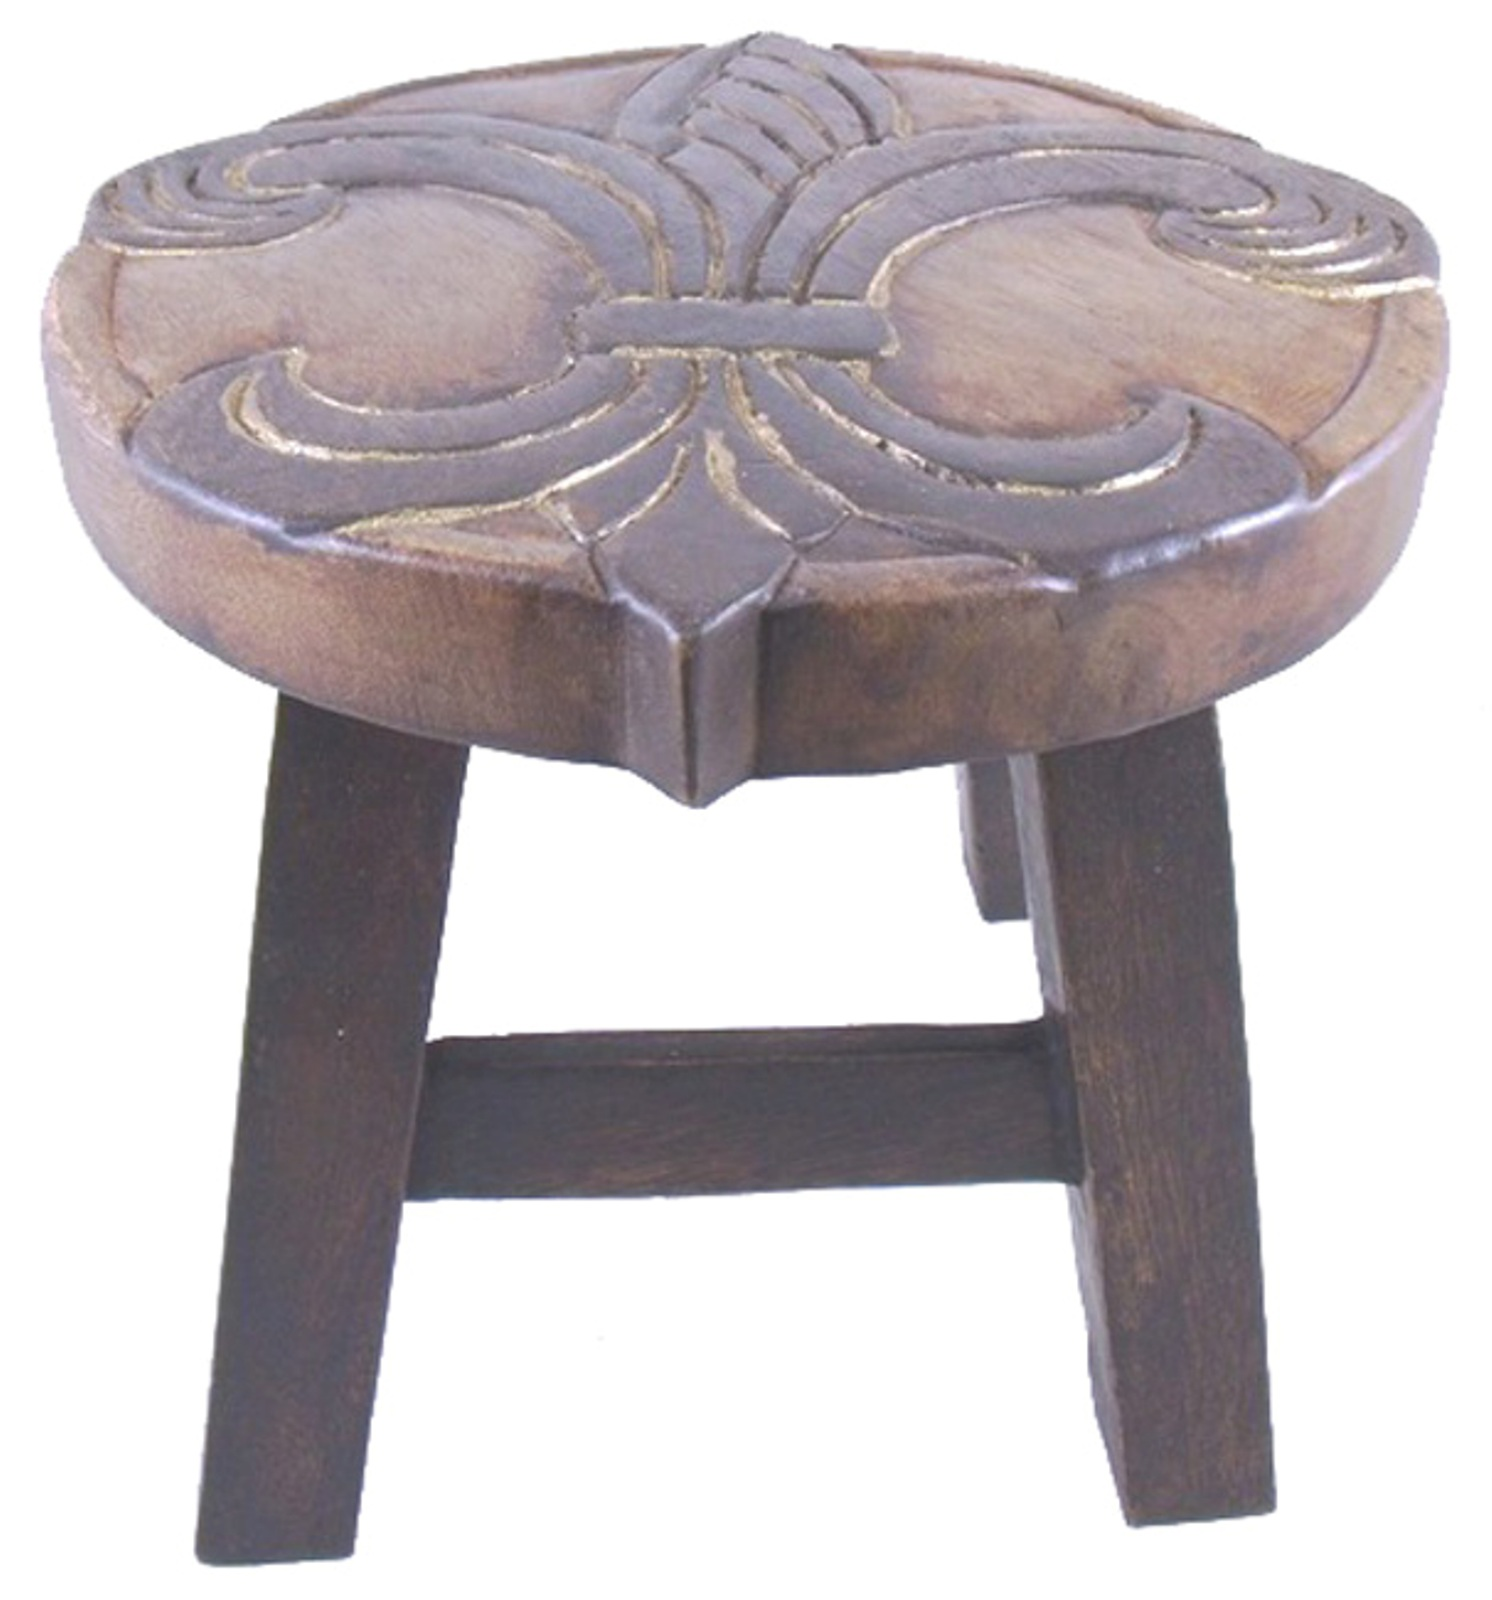 Details about Elegant Fleur de Lis Carved Wooden Child Step Stool